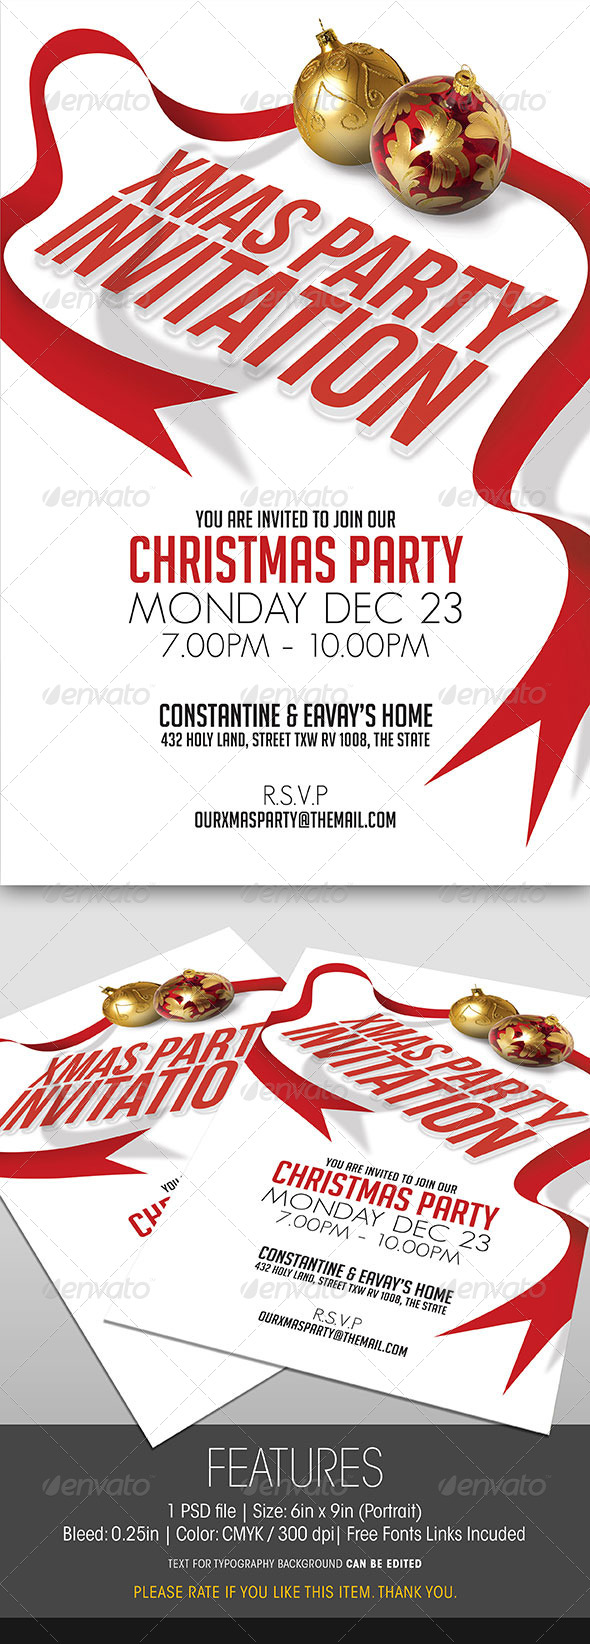 GraphicRiver Christmas Party Invitation 6342228